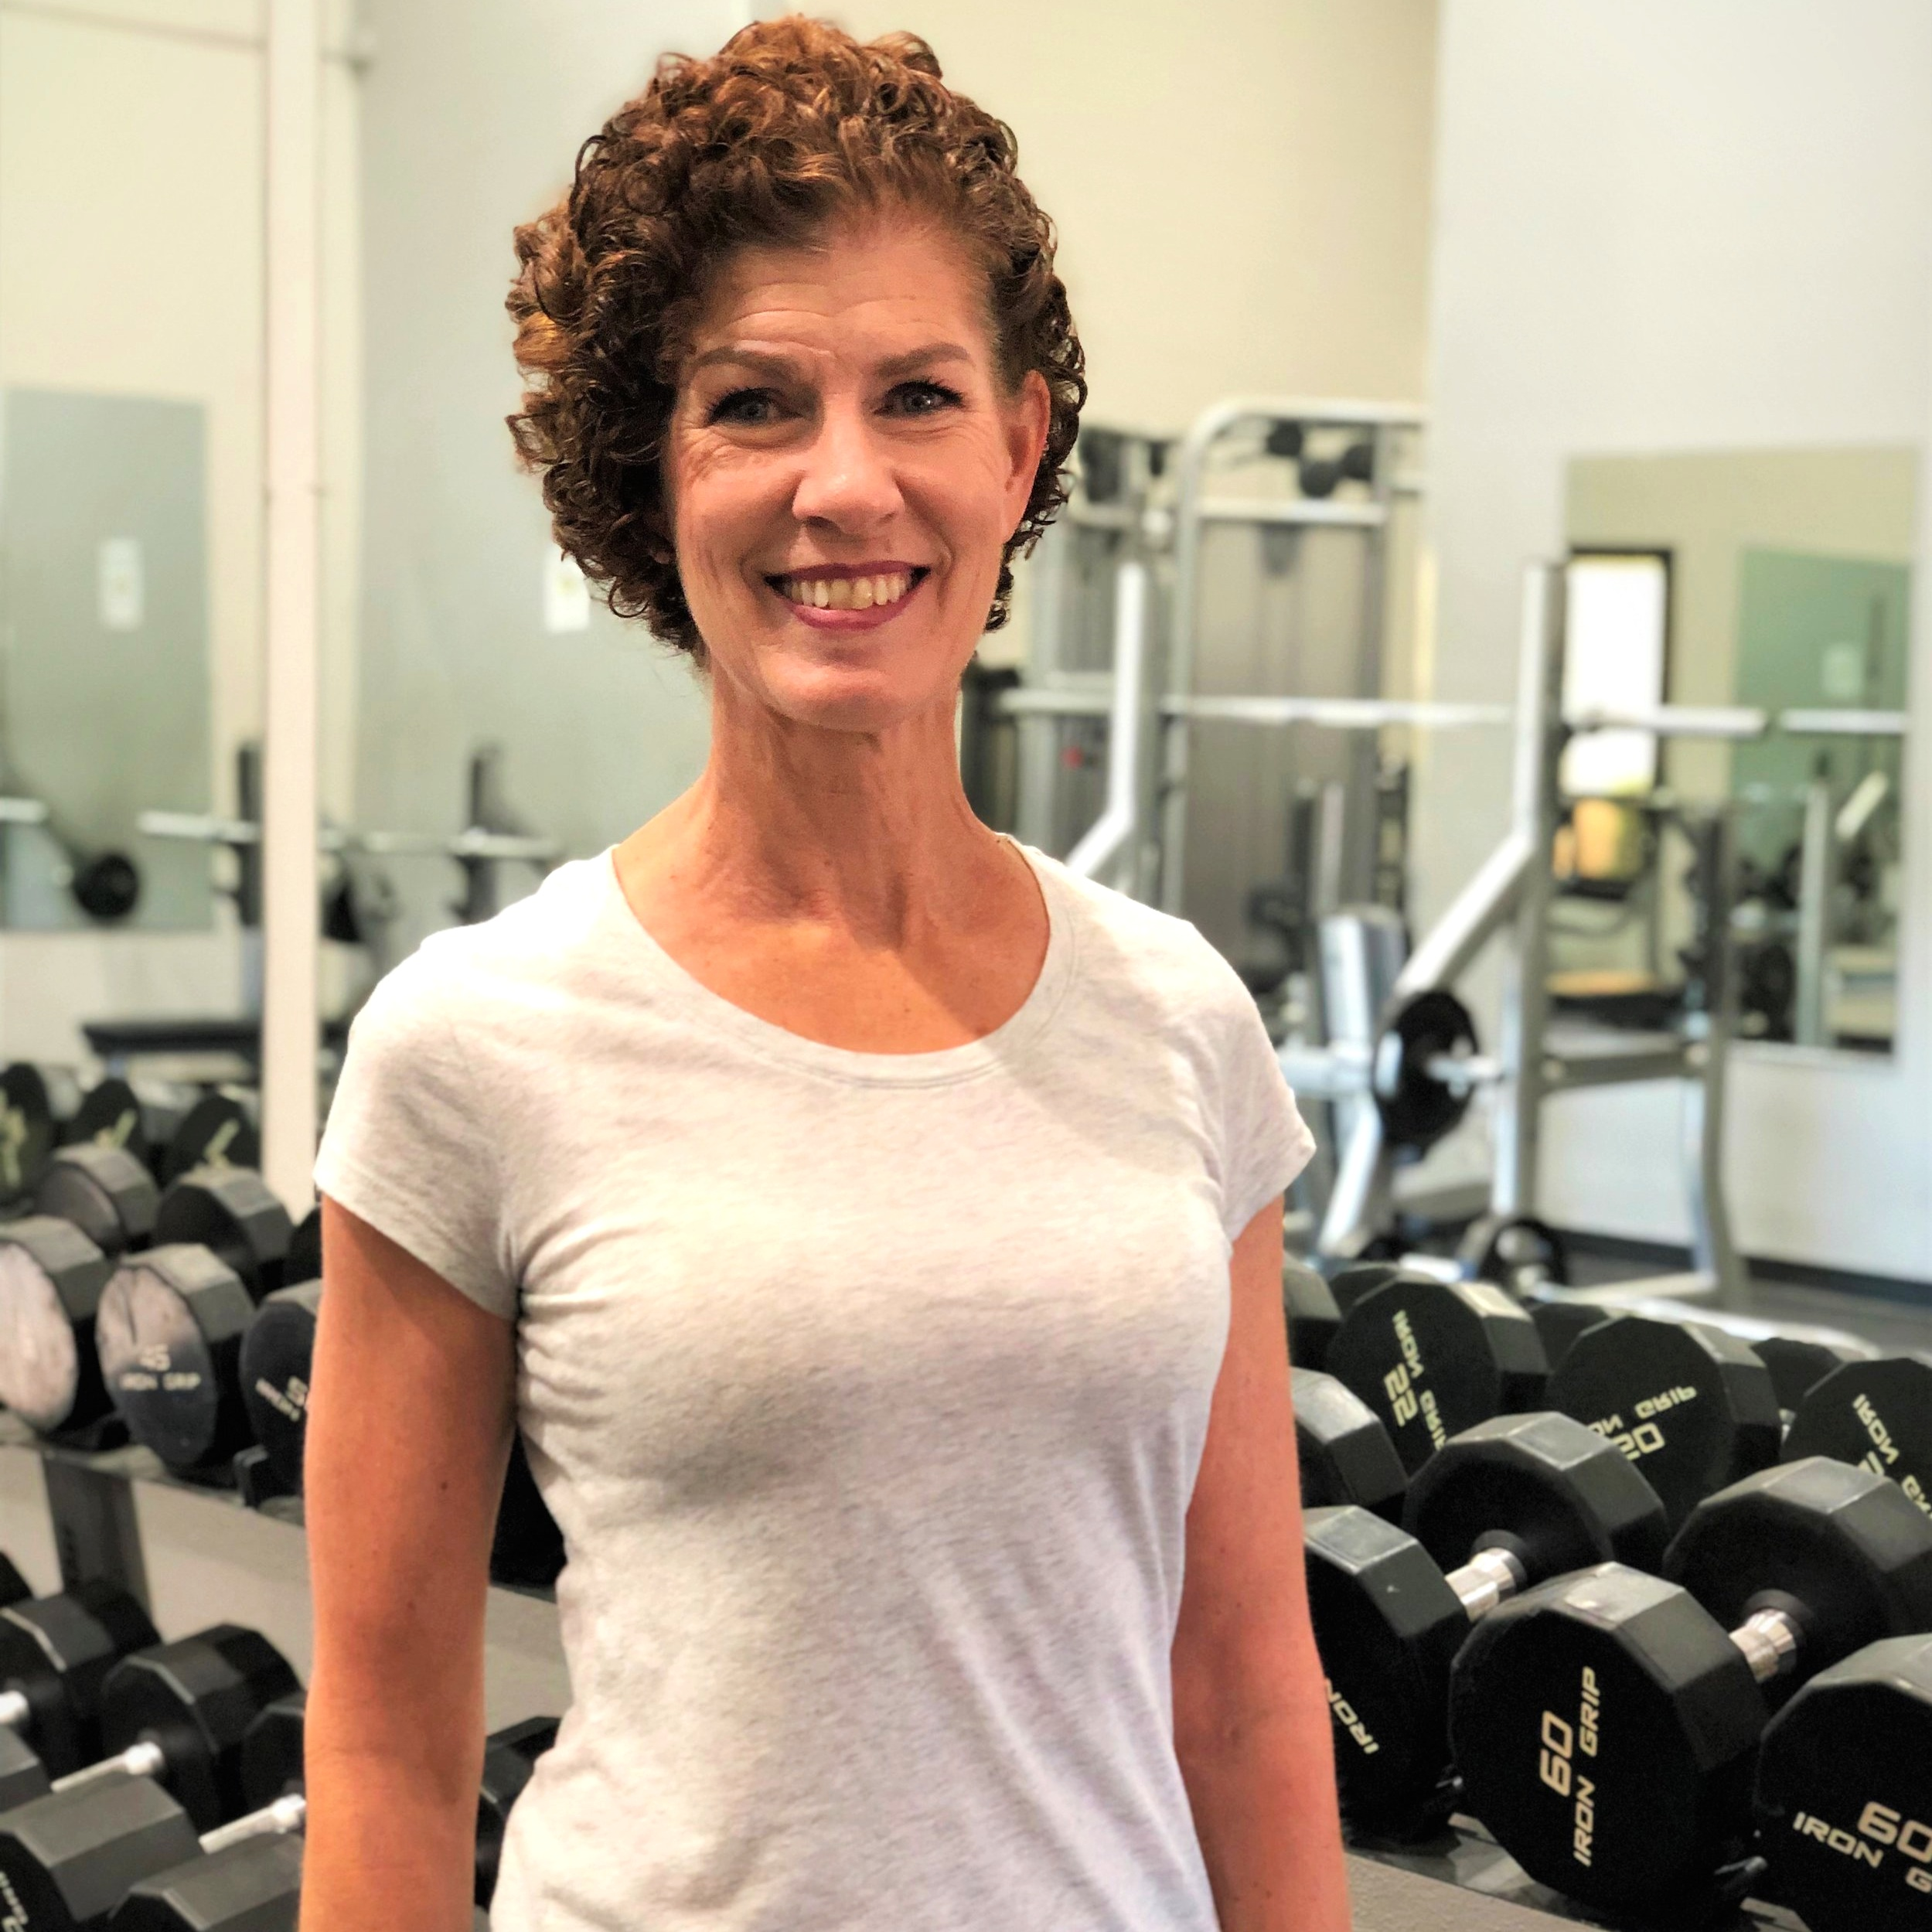 """I like to stay healthy and fit with strength training and cardio intervals and maintain flexibility and core strength with Pilates on the reformer and mat. Short efficient workouts can be very beneficial in our busy lives."""